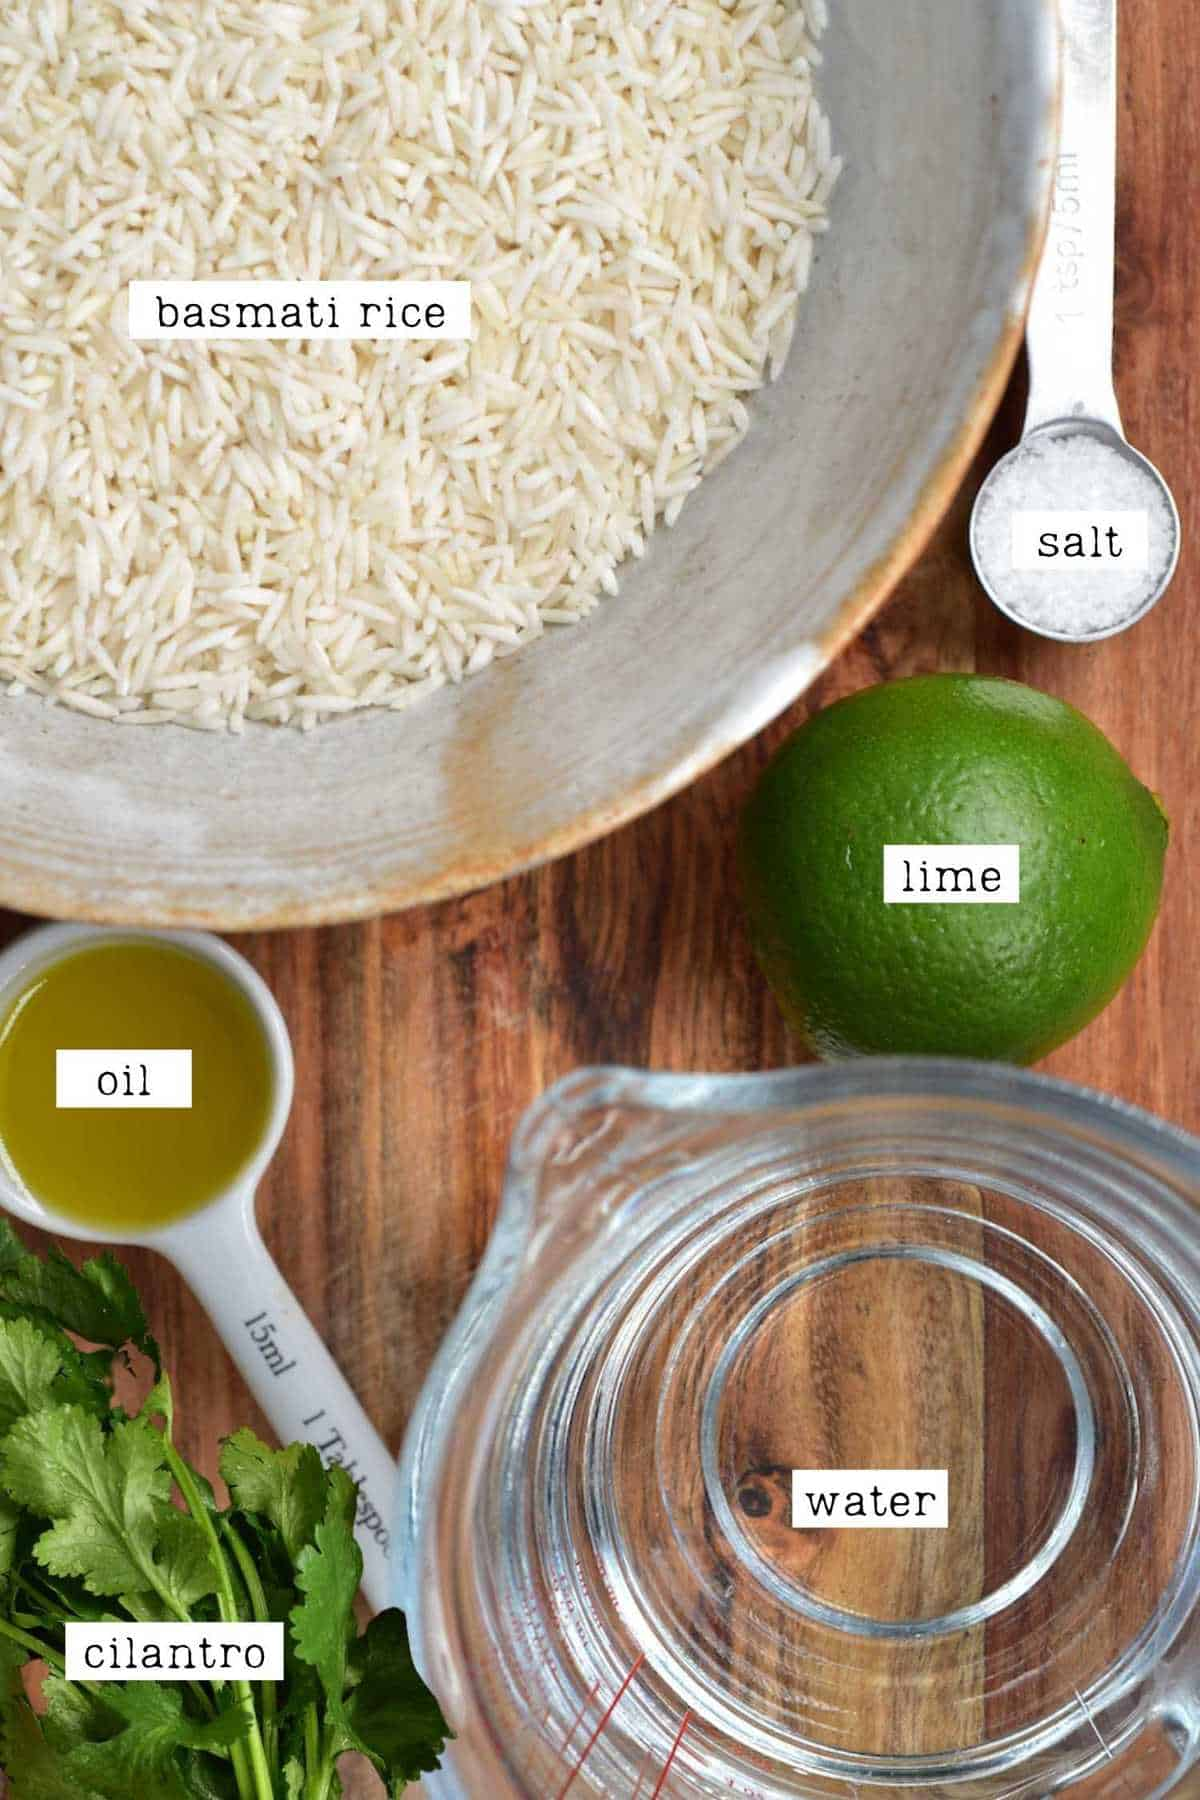 Ingredients for coriander lime rice